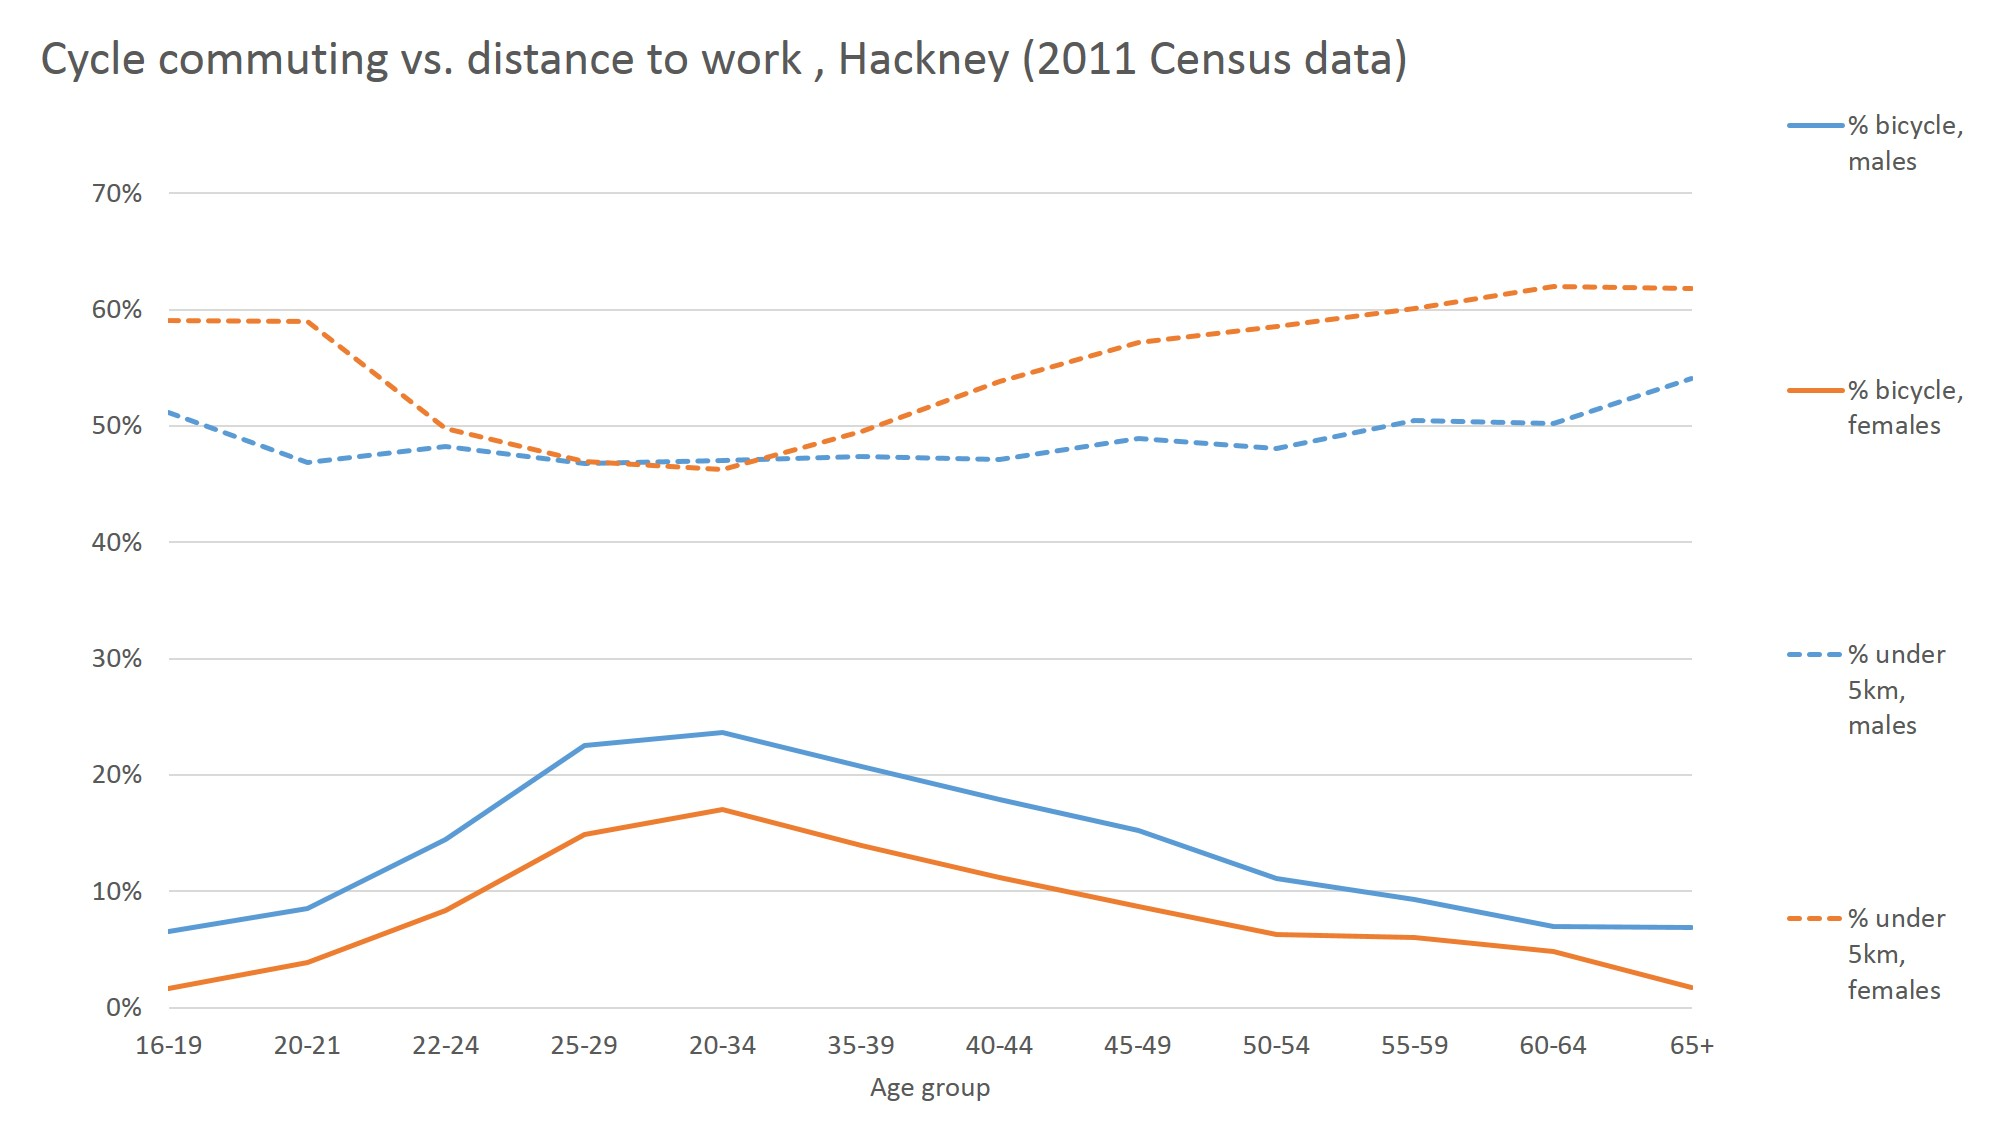 Cycling potential is much greater in Hackney among women, young and older people.